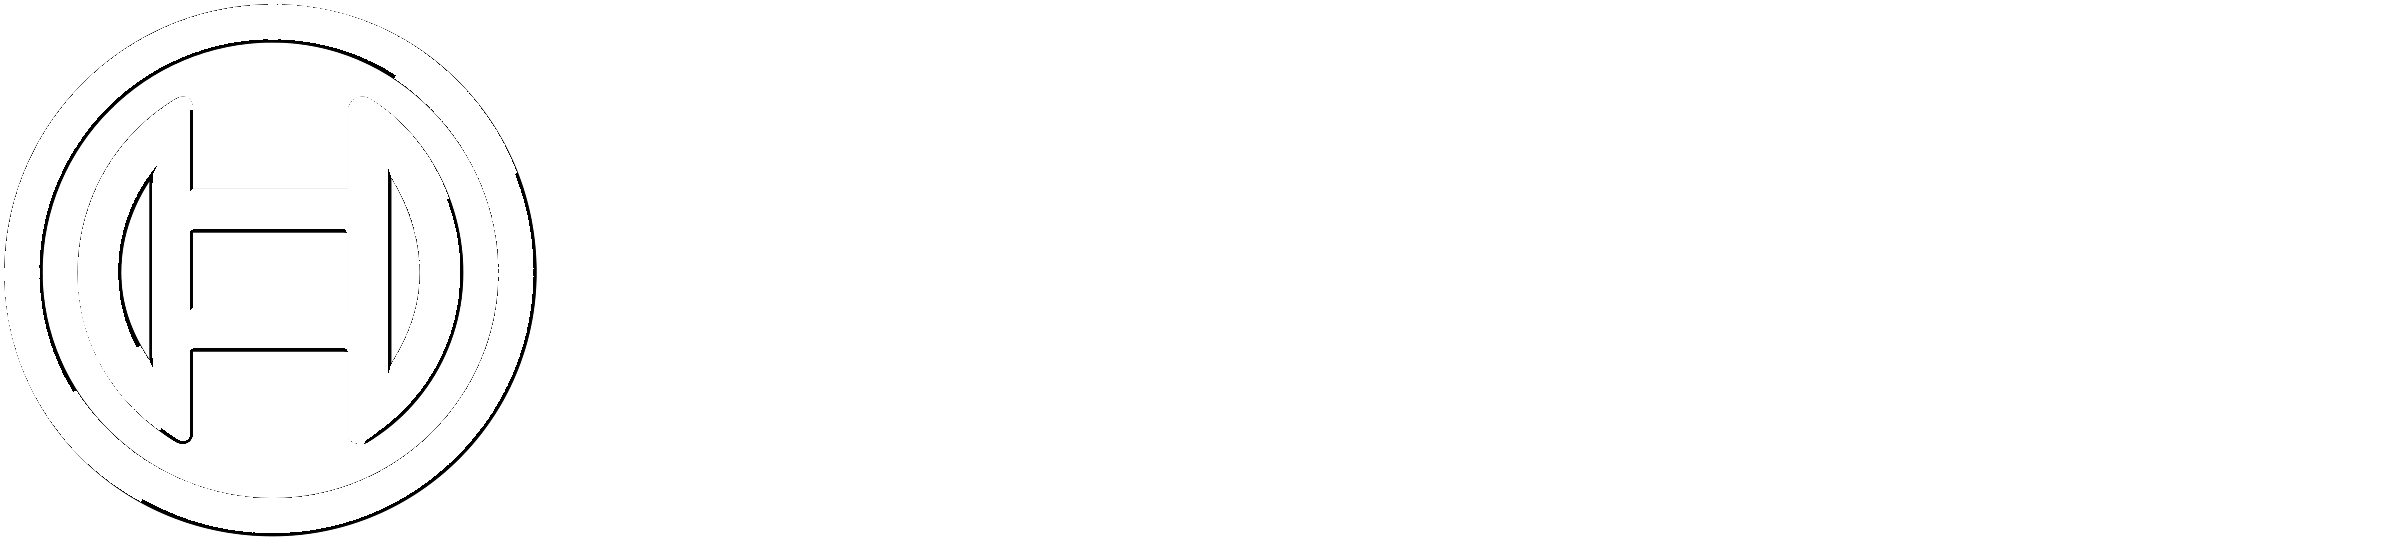 bosch-logo-black-and-white